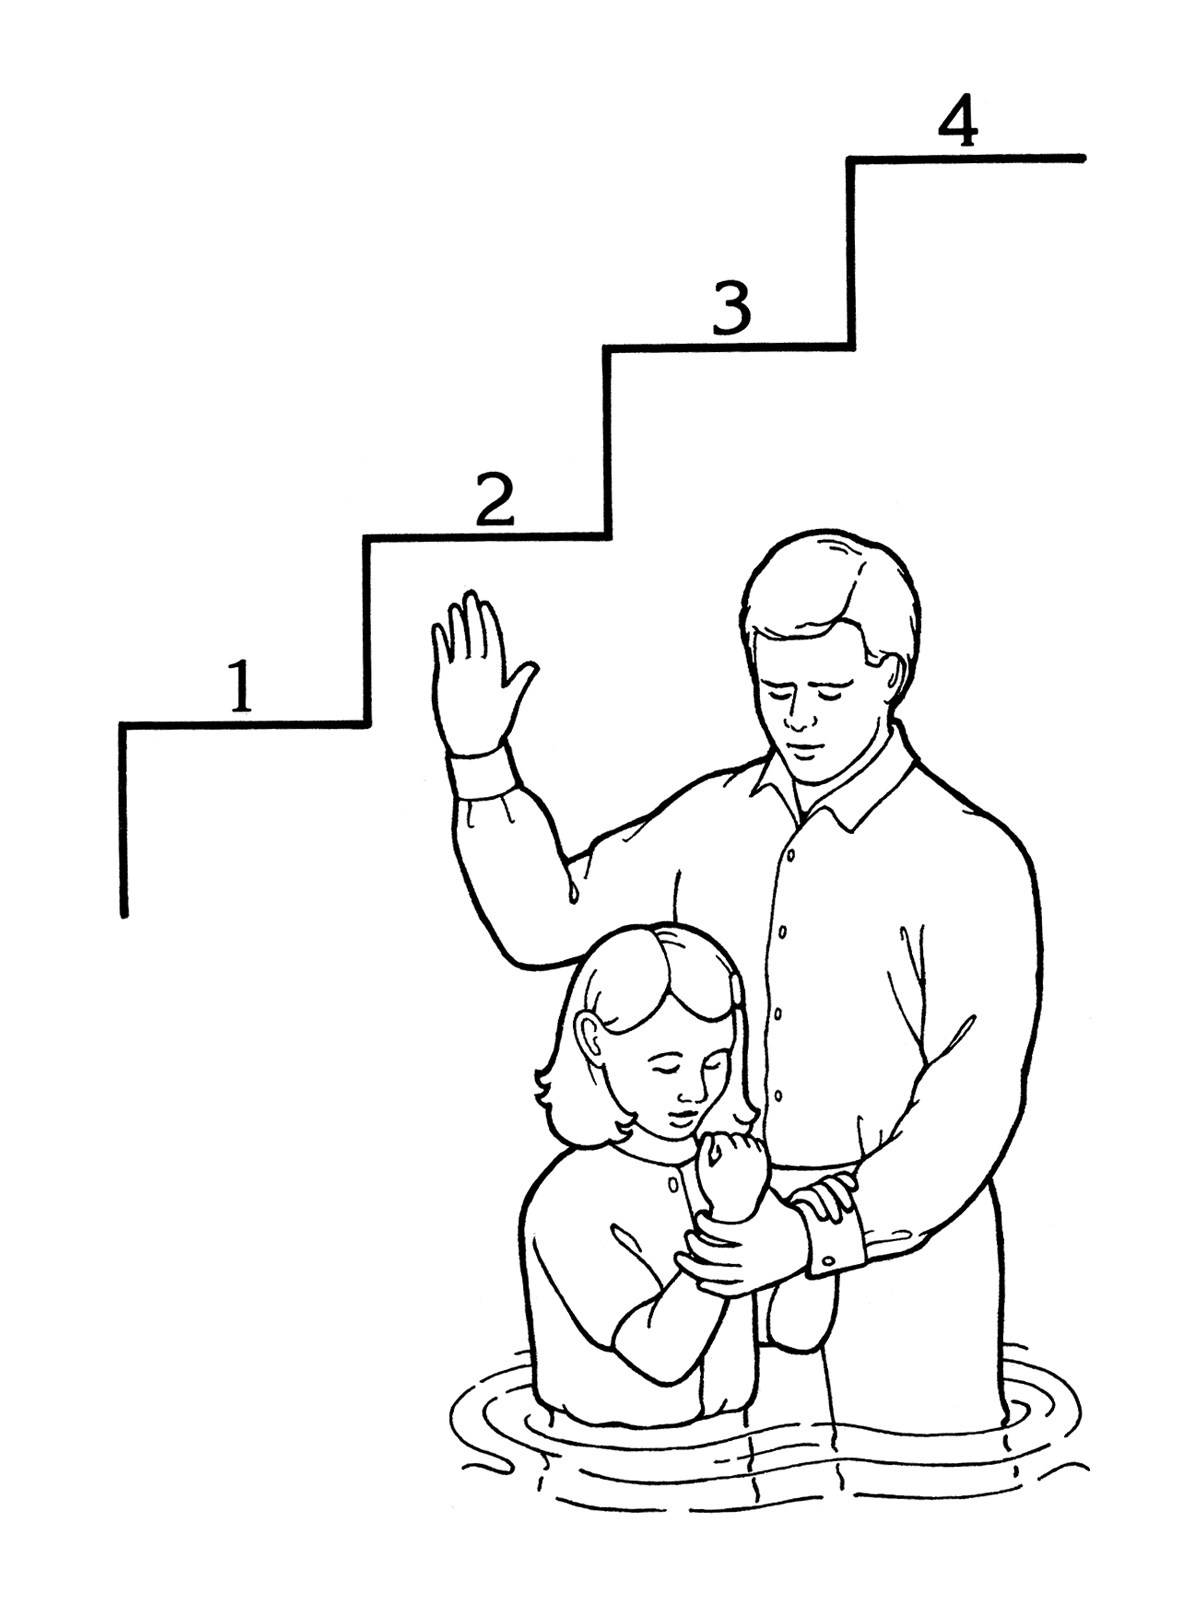 article of faith coloring pages - photo#21